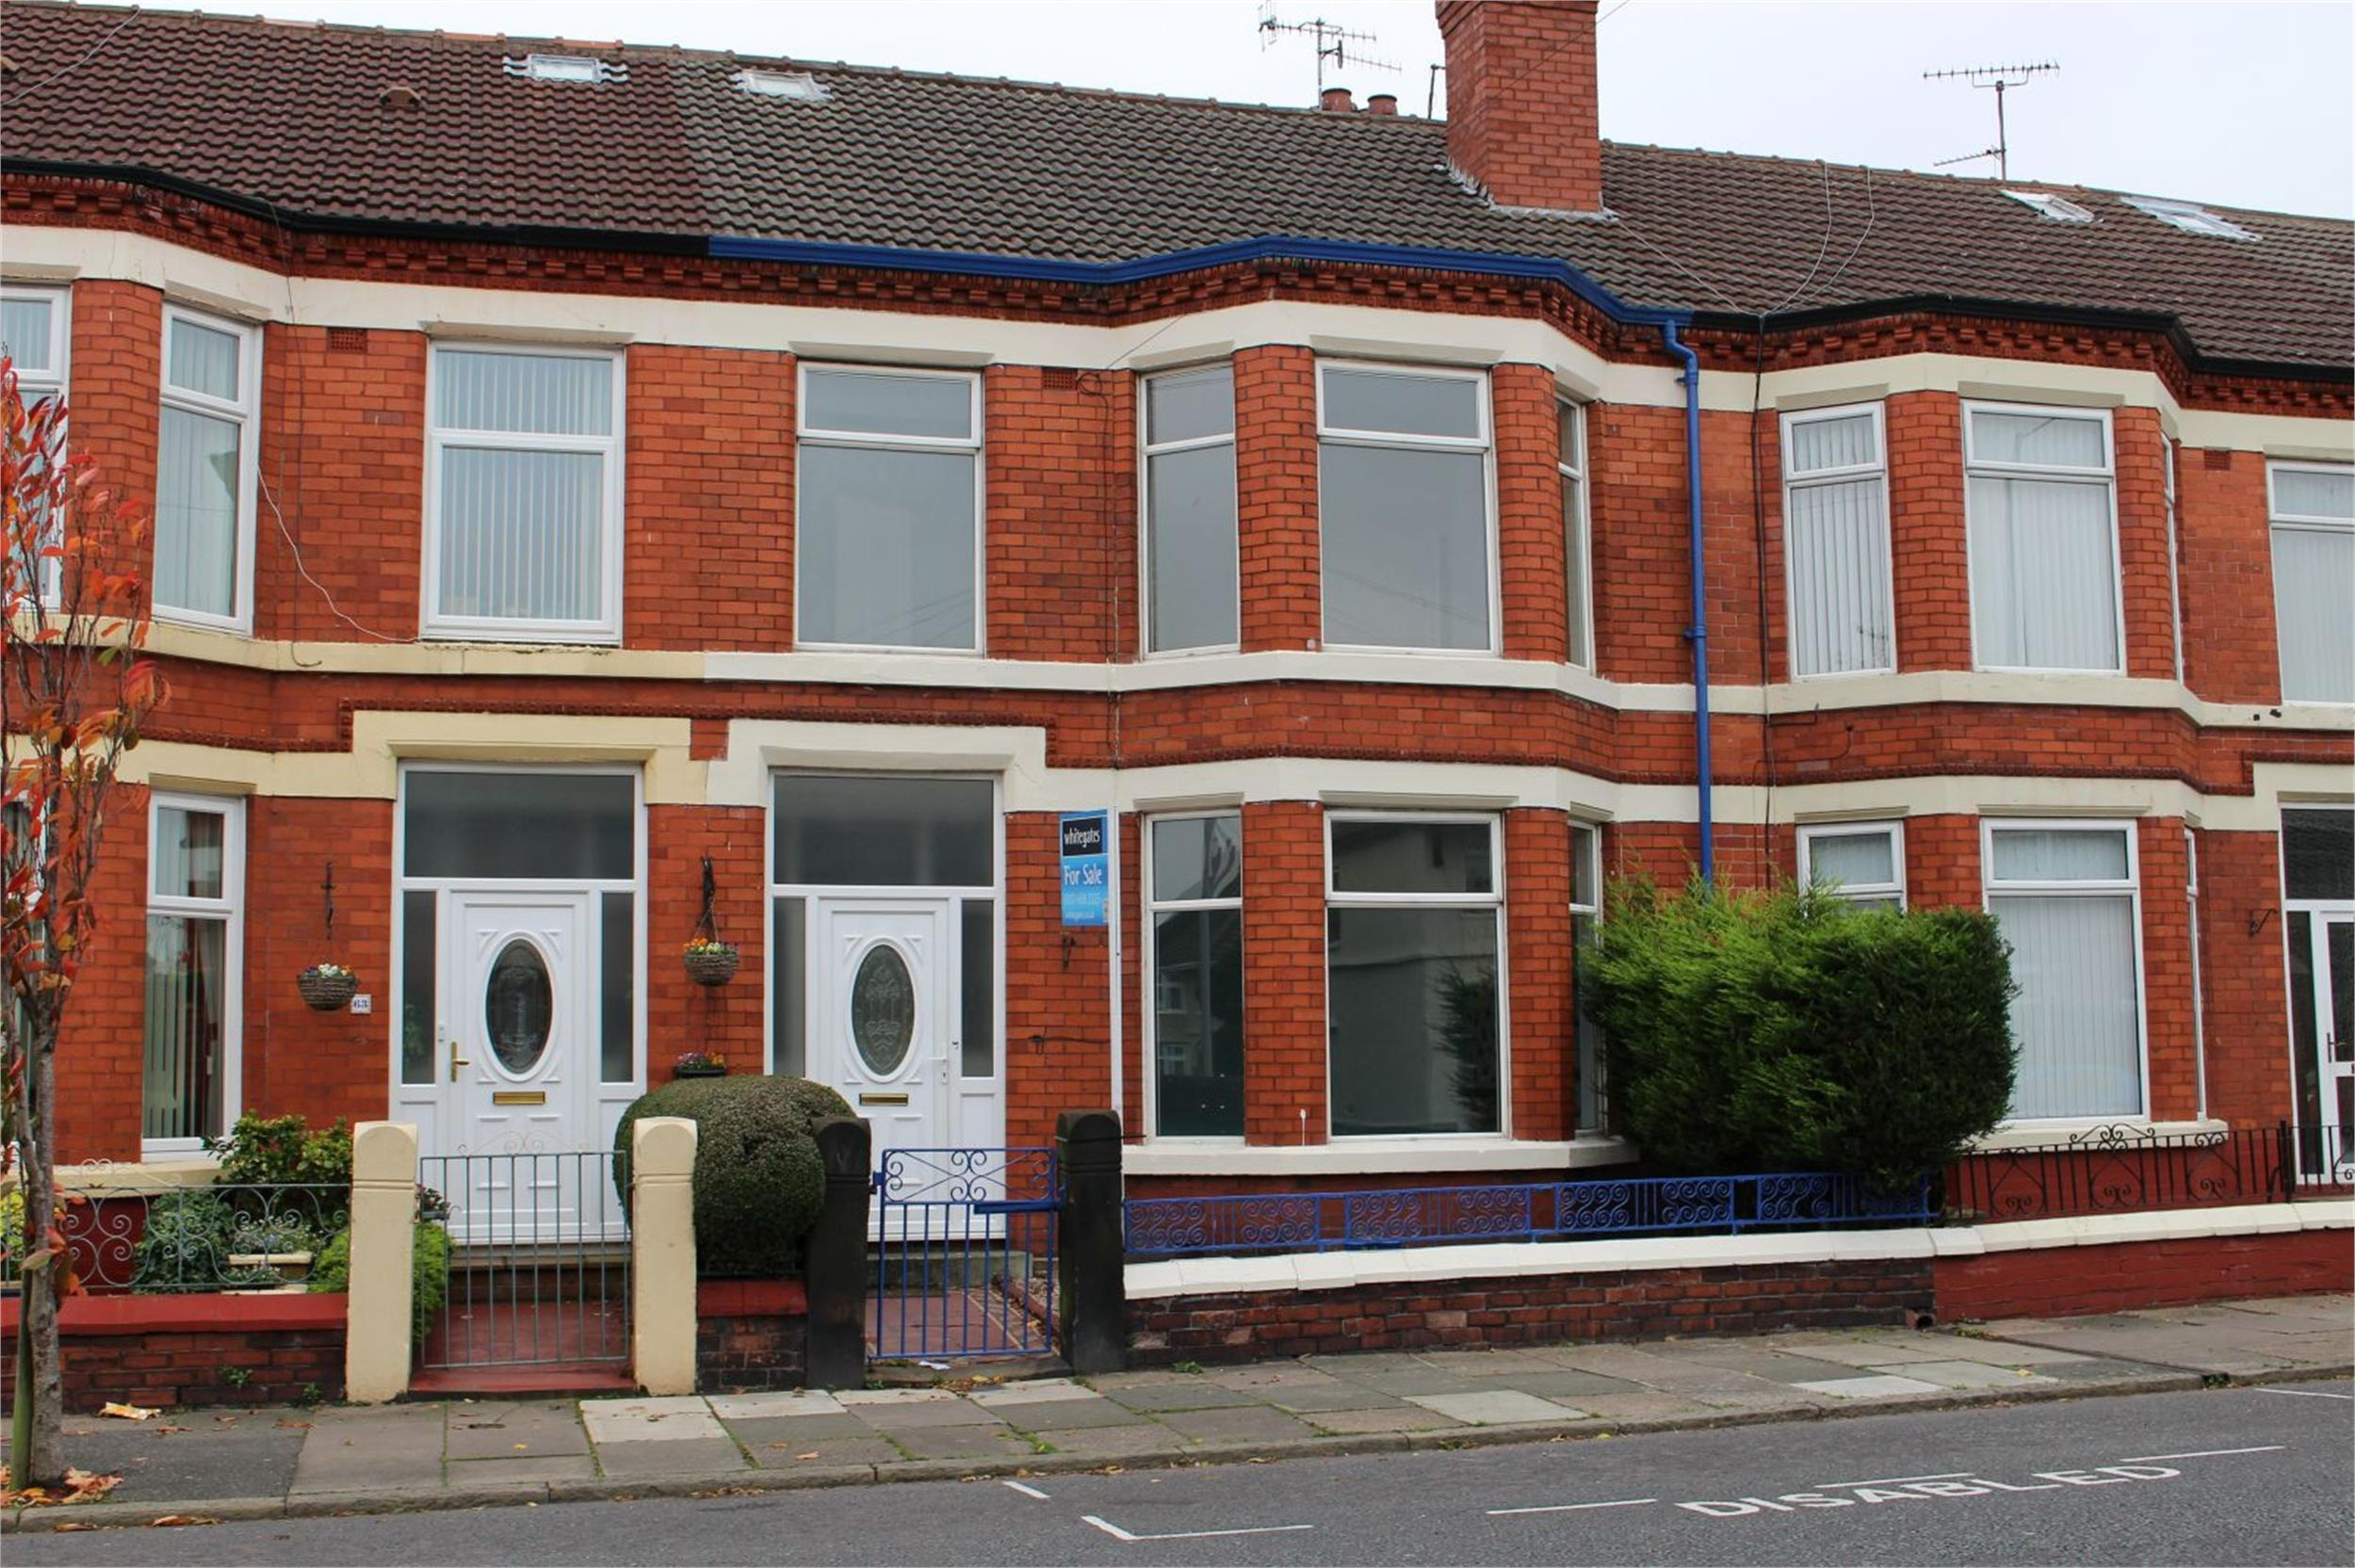 4 bedroom terraced house for sale home decorations idea for Whats a terraced house